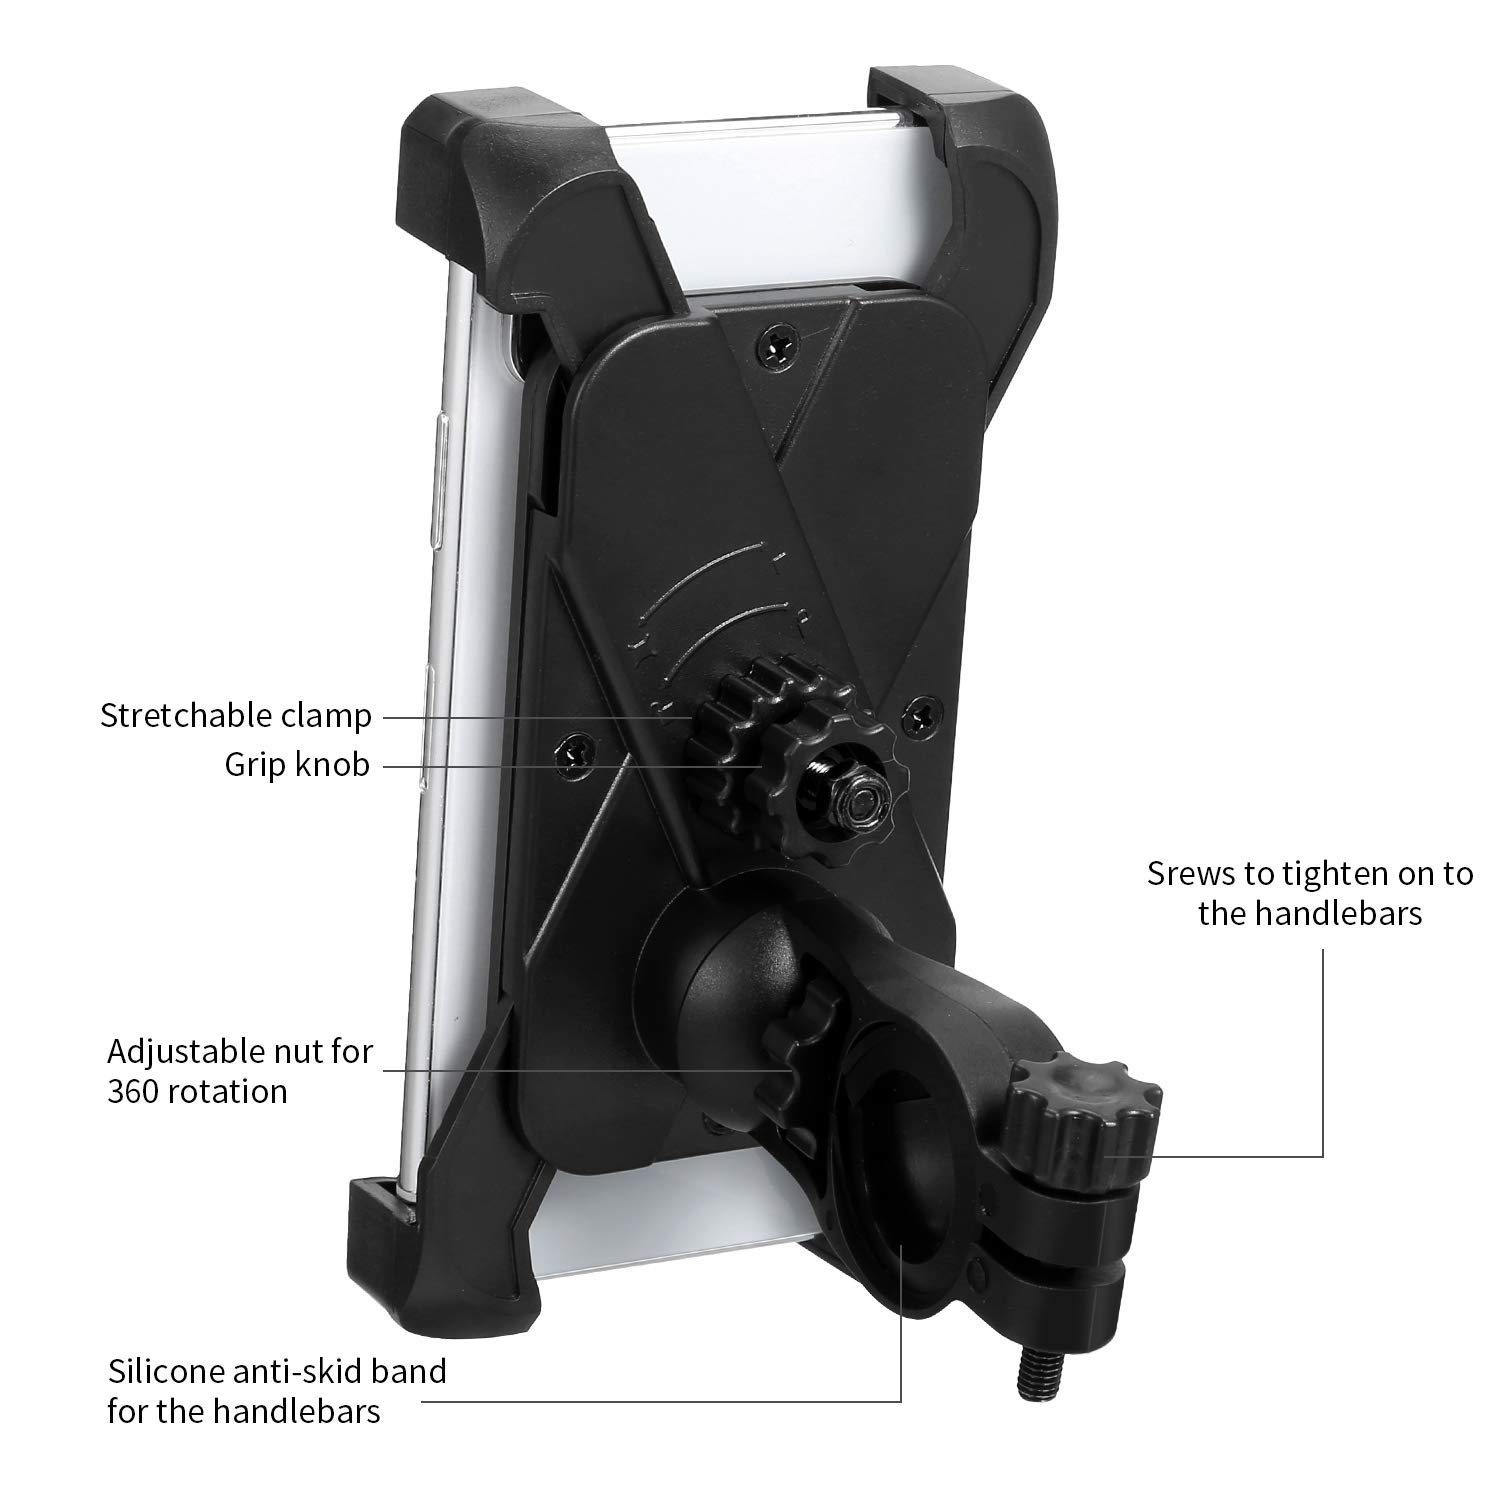 Phone Holder for Bike,Non-Slip Bike Phone Mount Holder,Bike Handlebar Phone Mount with Lock Knob for Iphone 7,6,6s,5,5s Samsung Galaxy S7 S6 Edge S5 S4 Nexus and Others From 4 to 7 inches